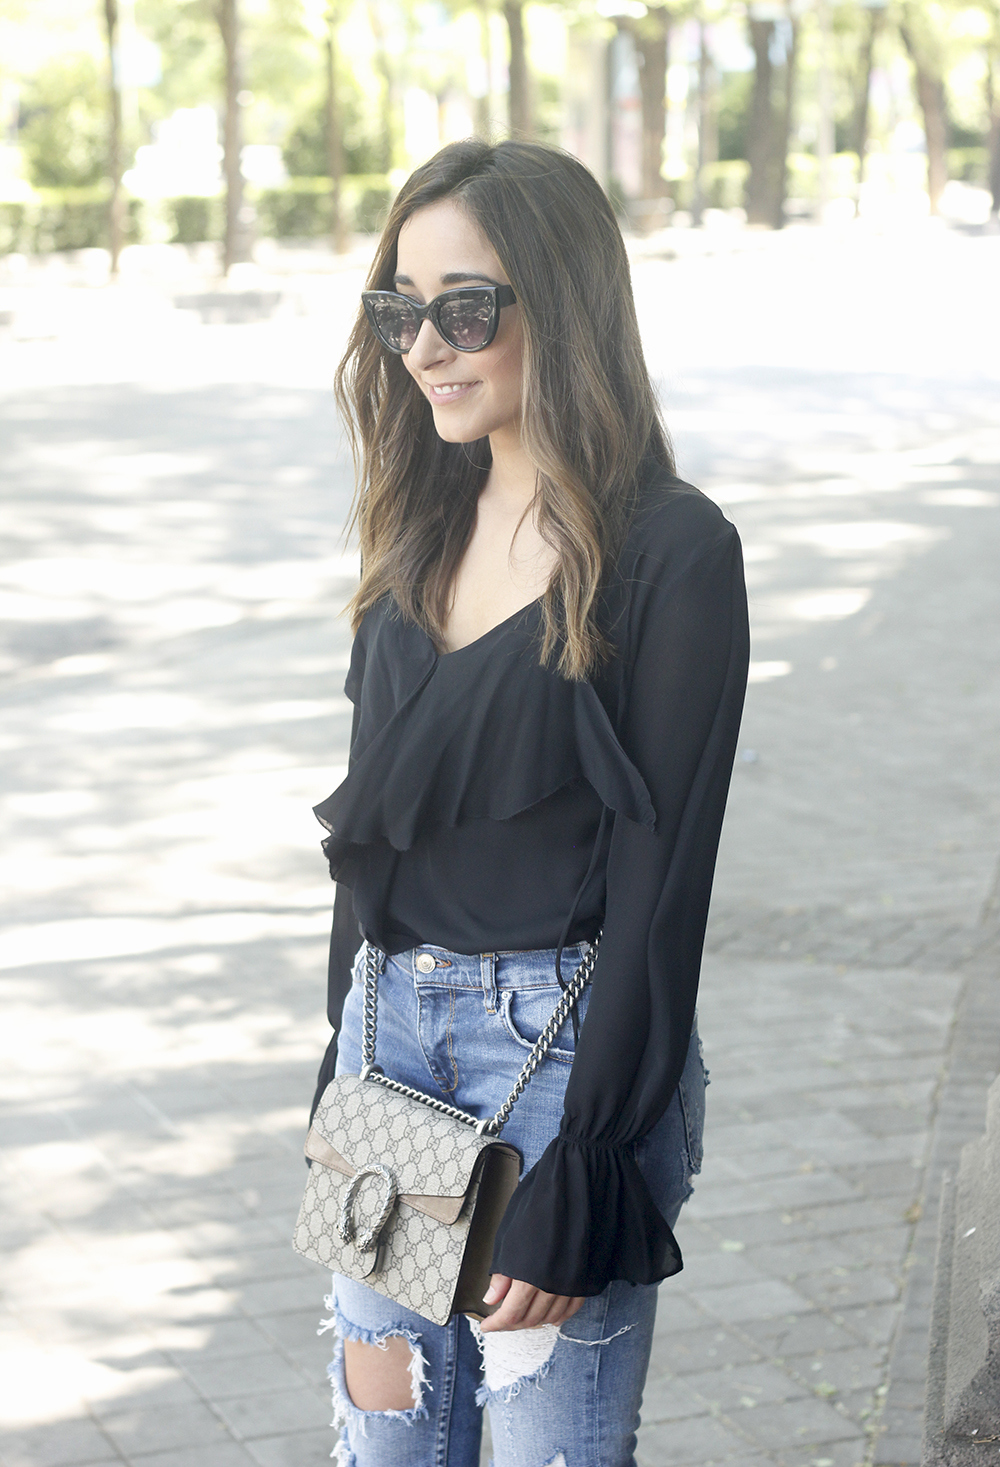 frilled shirt ripped jeans black heels gucci bag summer outfit sunnies17